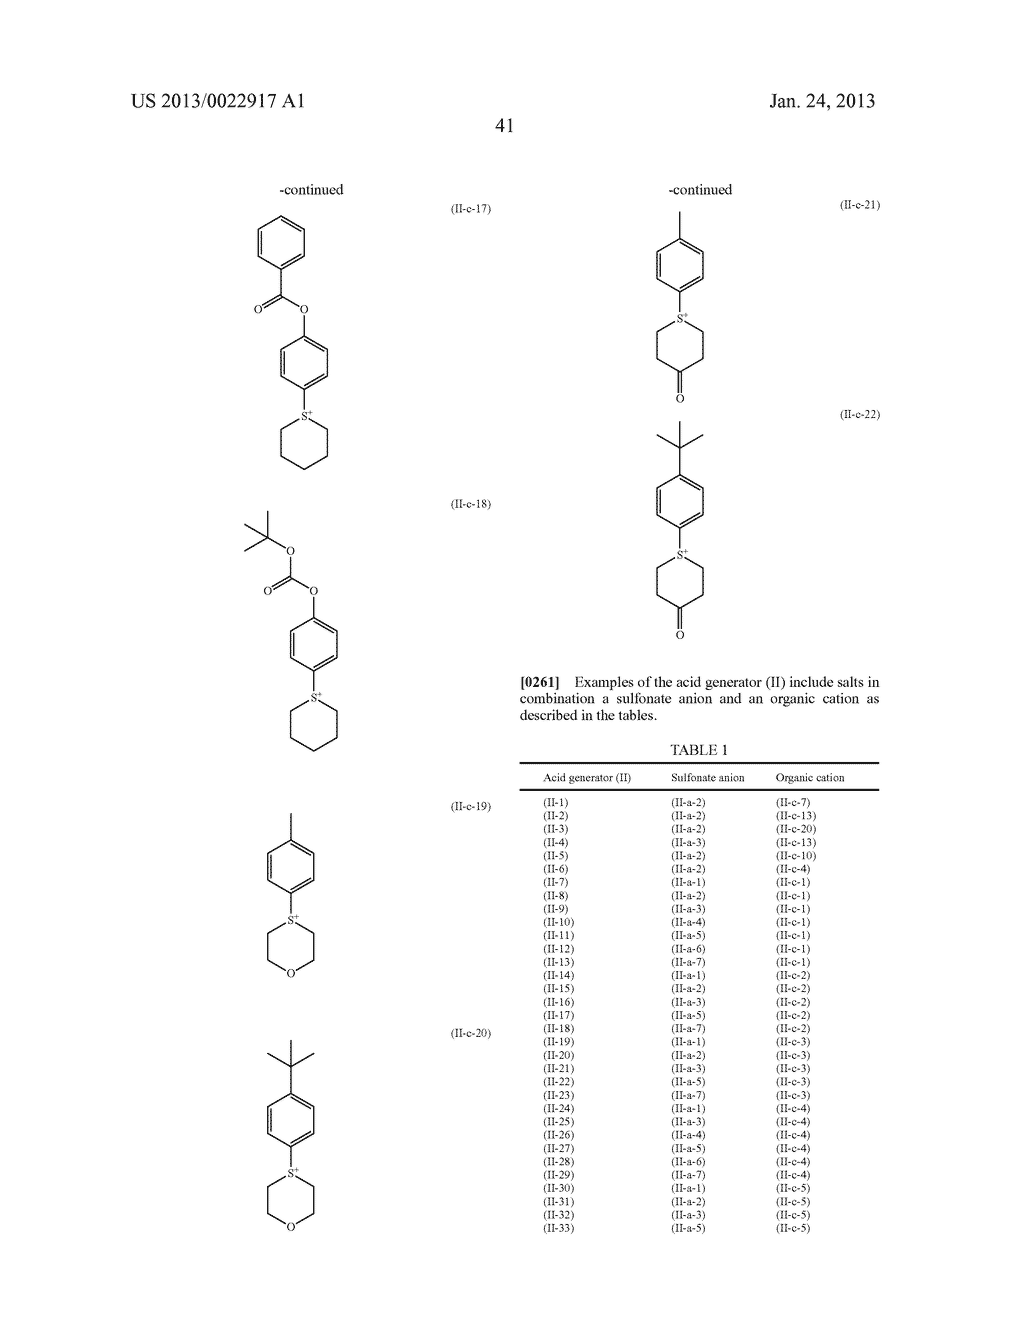 RESIST COMPOSITION AND METHOD FOR PRODUCING RESIST PATTERN - diagram, schematic, and image 42